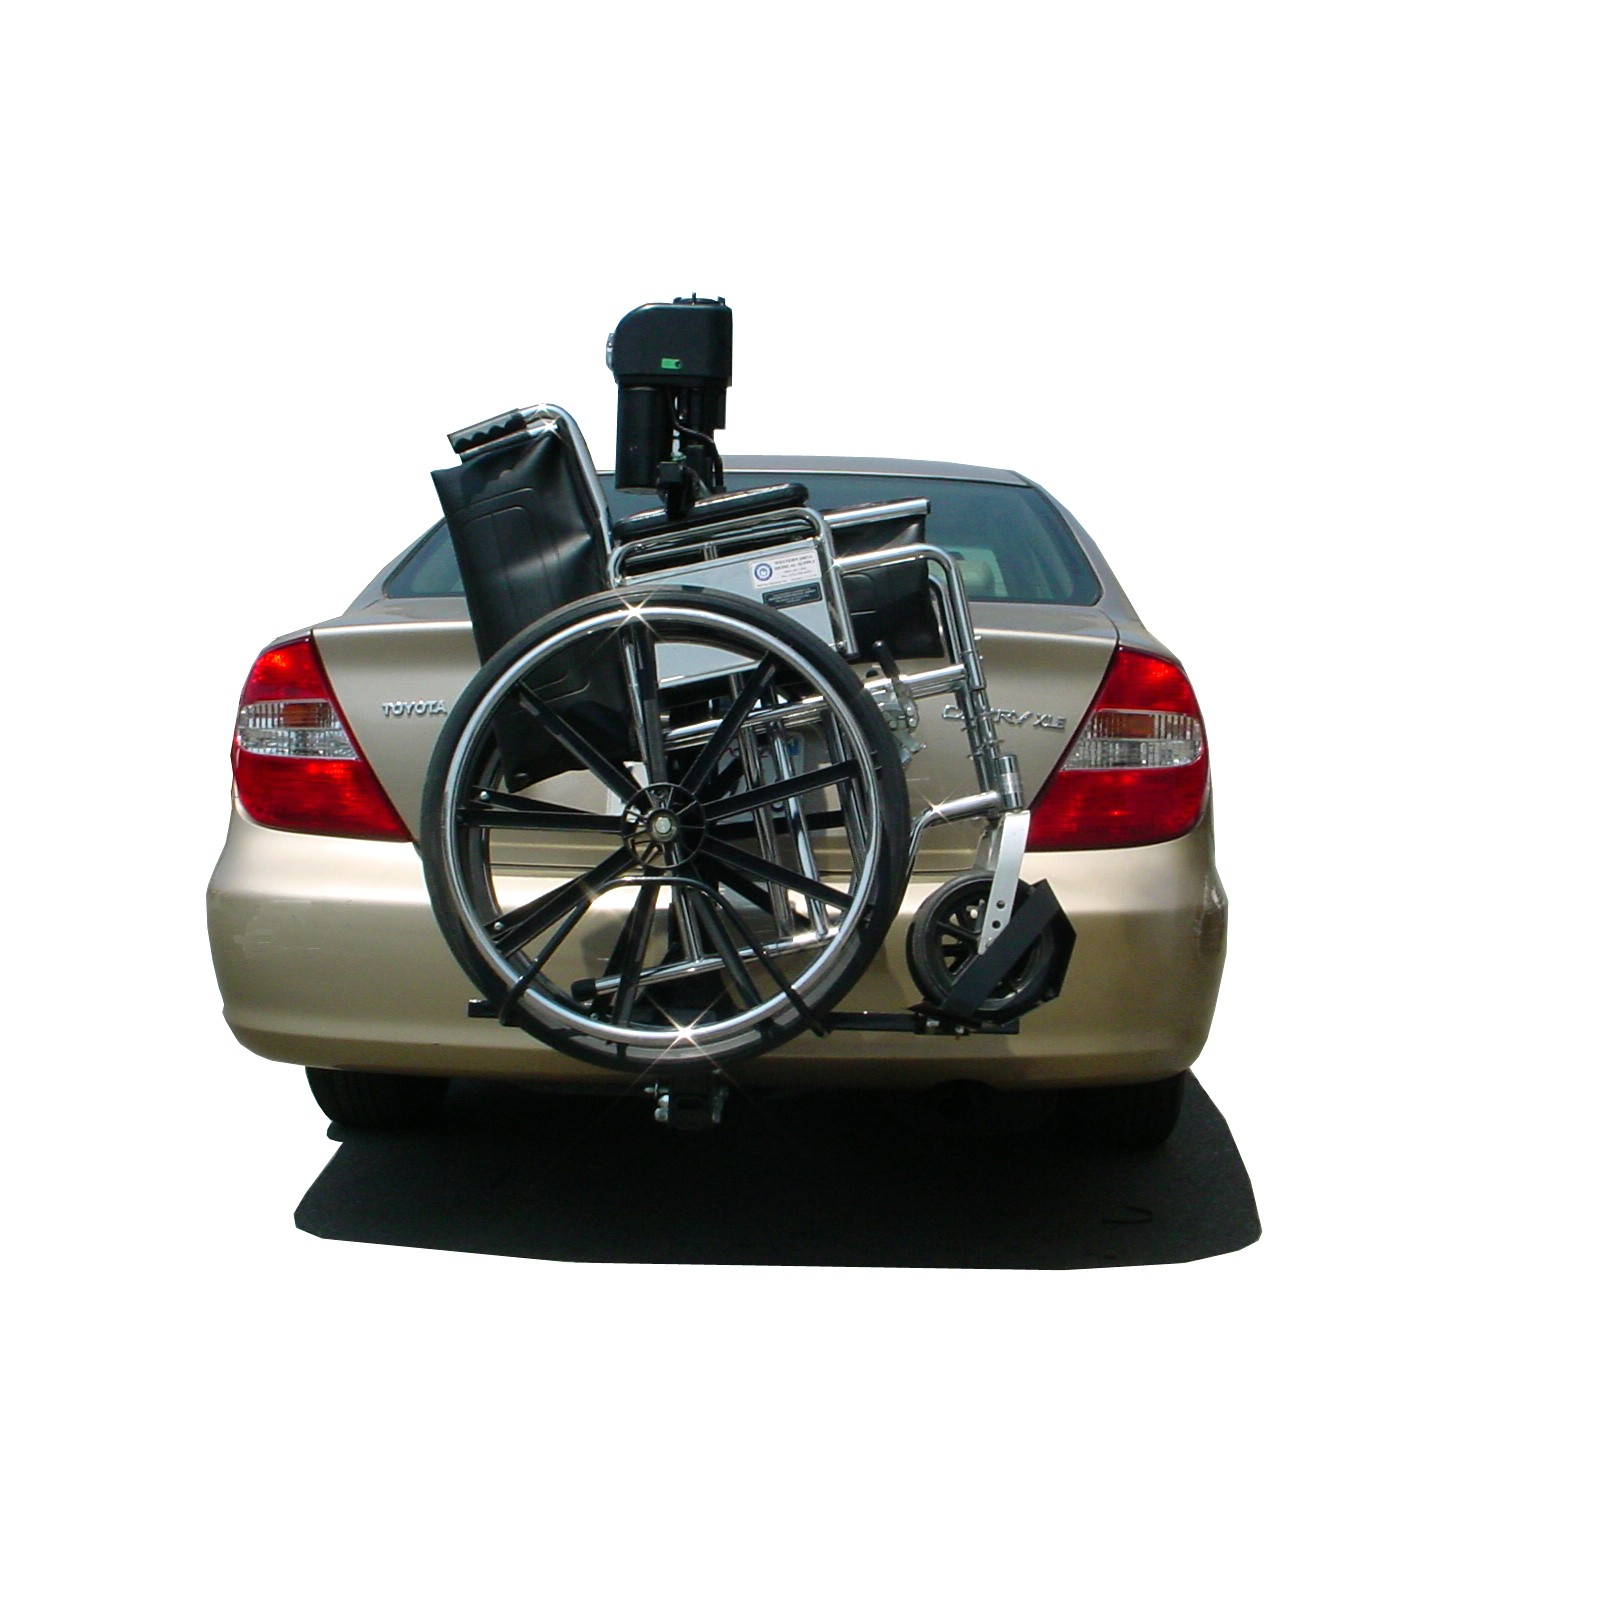 Electric Chair Mobility Trilift Mobility Power Chair Scooter And Wheelchair Carrier